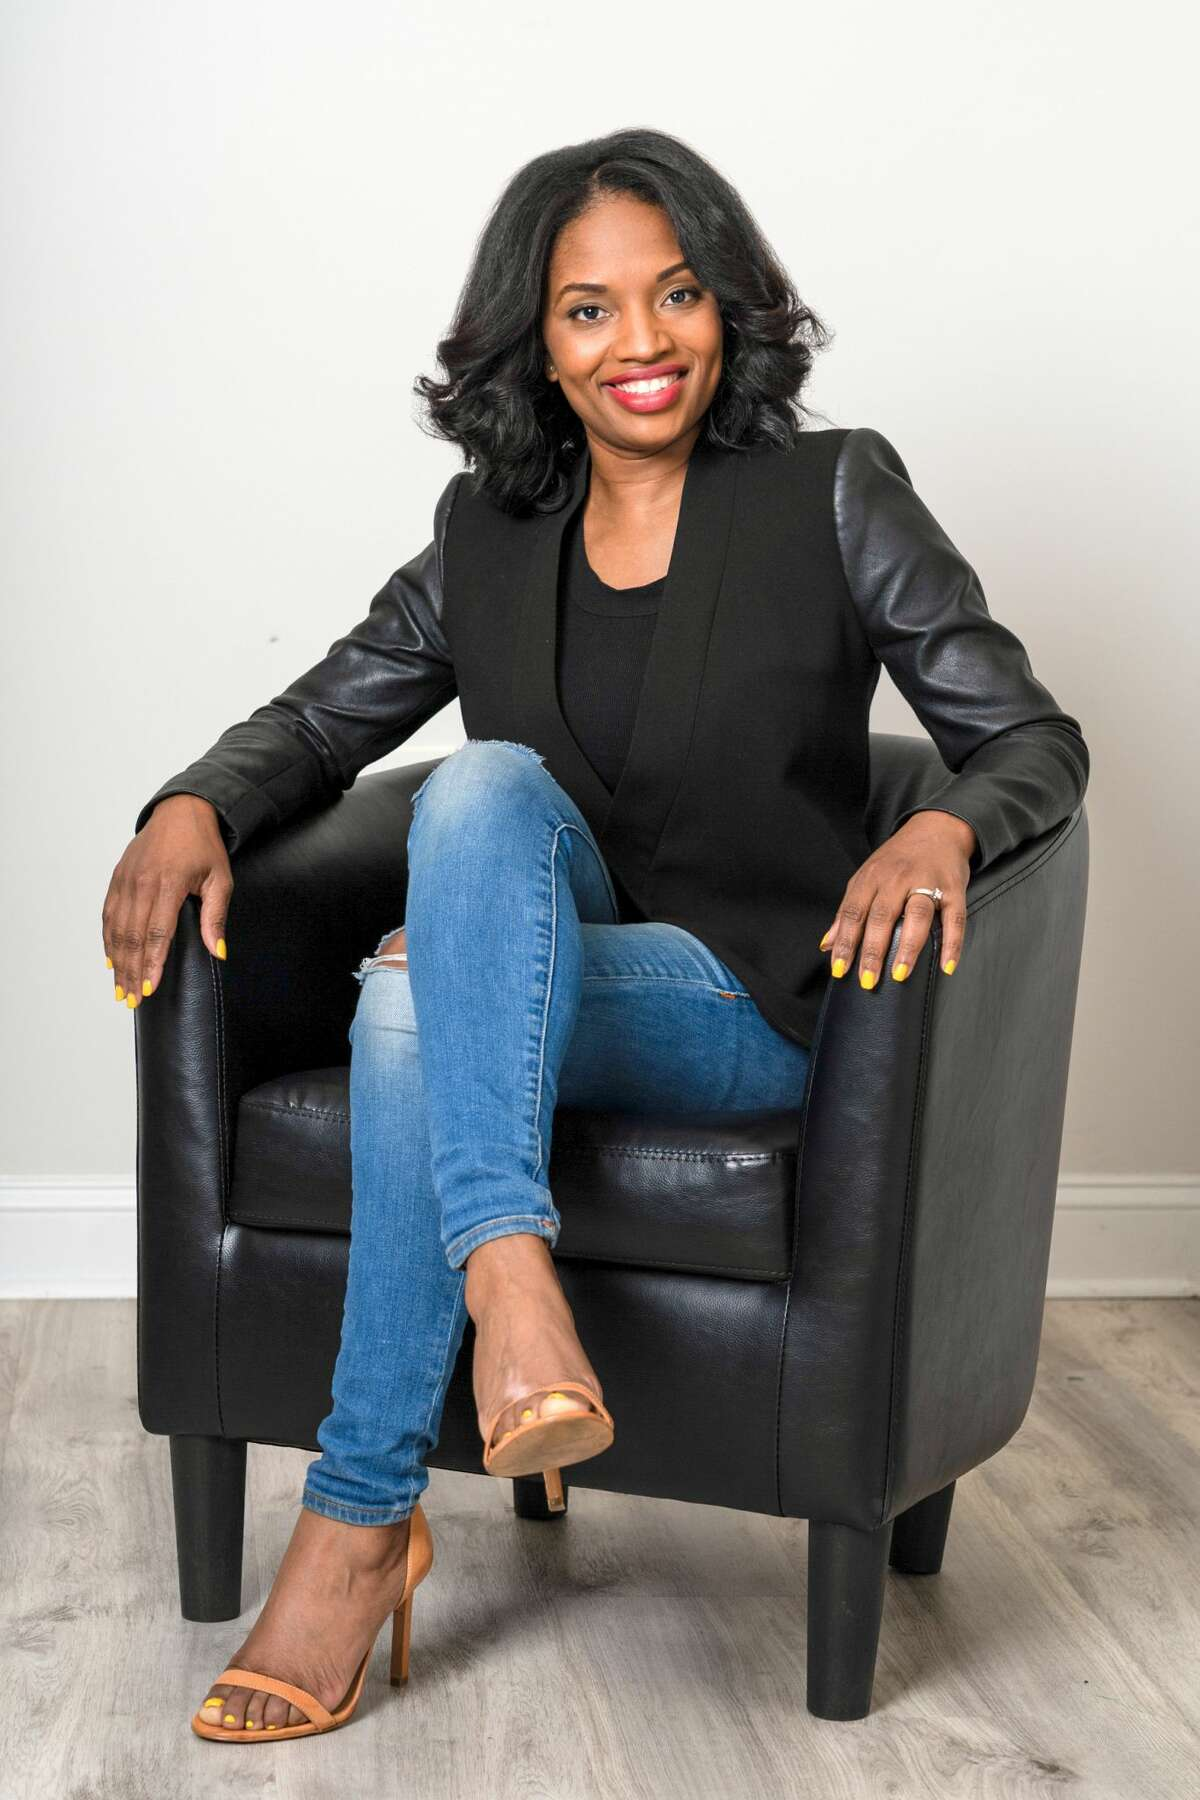 Nathaalie M. Carey, Women@Work executive boardmember and magazine columnist. She is senior vice president, industry affairs and social responsibility at NAREIT.